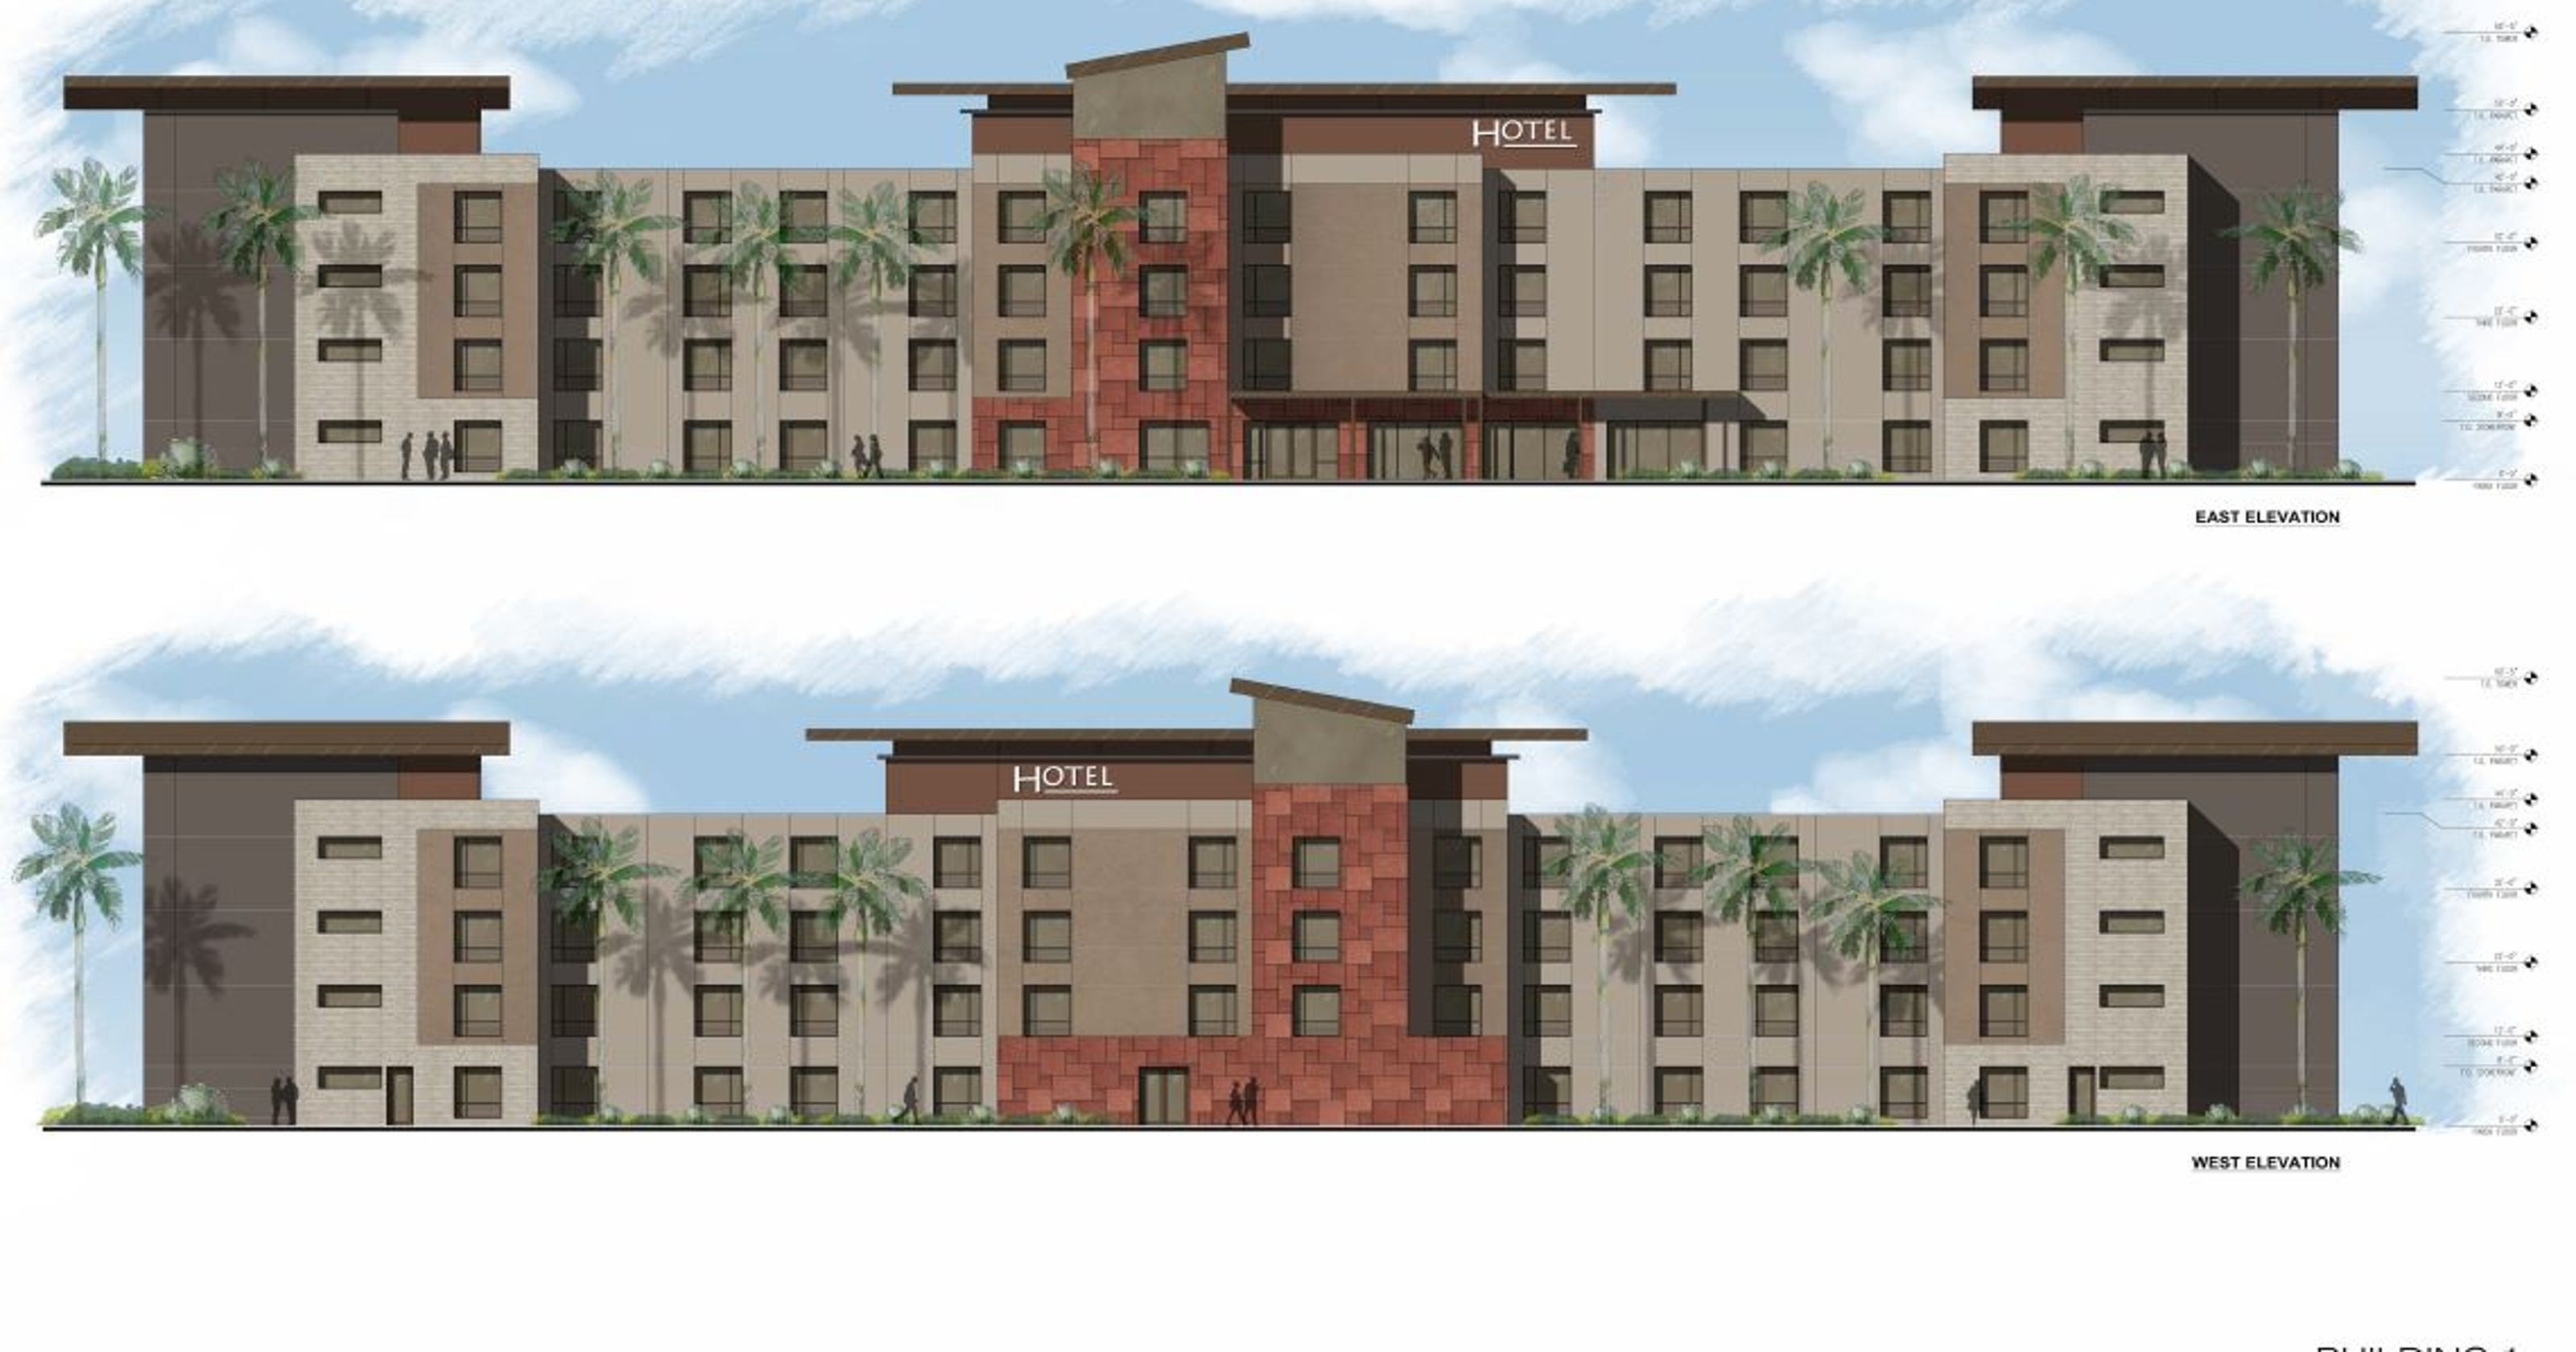 An empty lot near I-10 will be home to a hotel, drive-thru